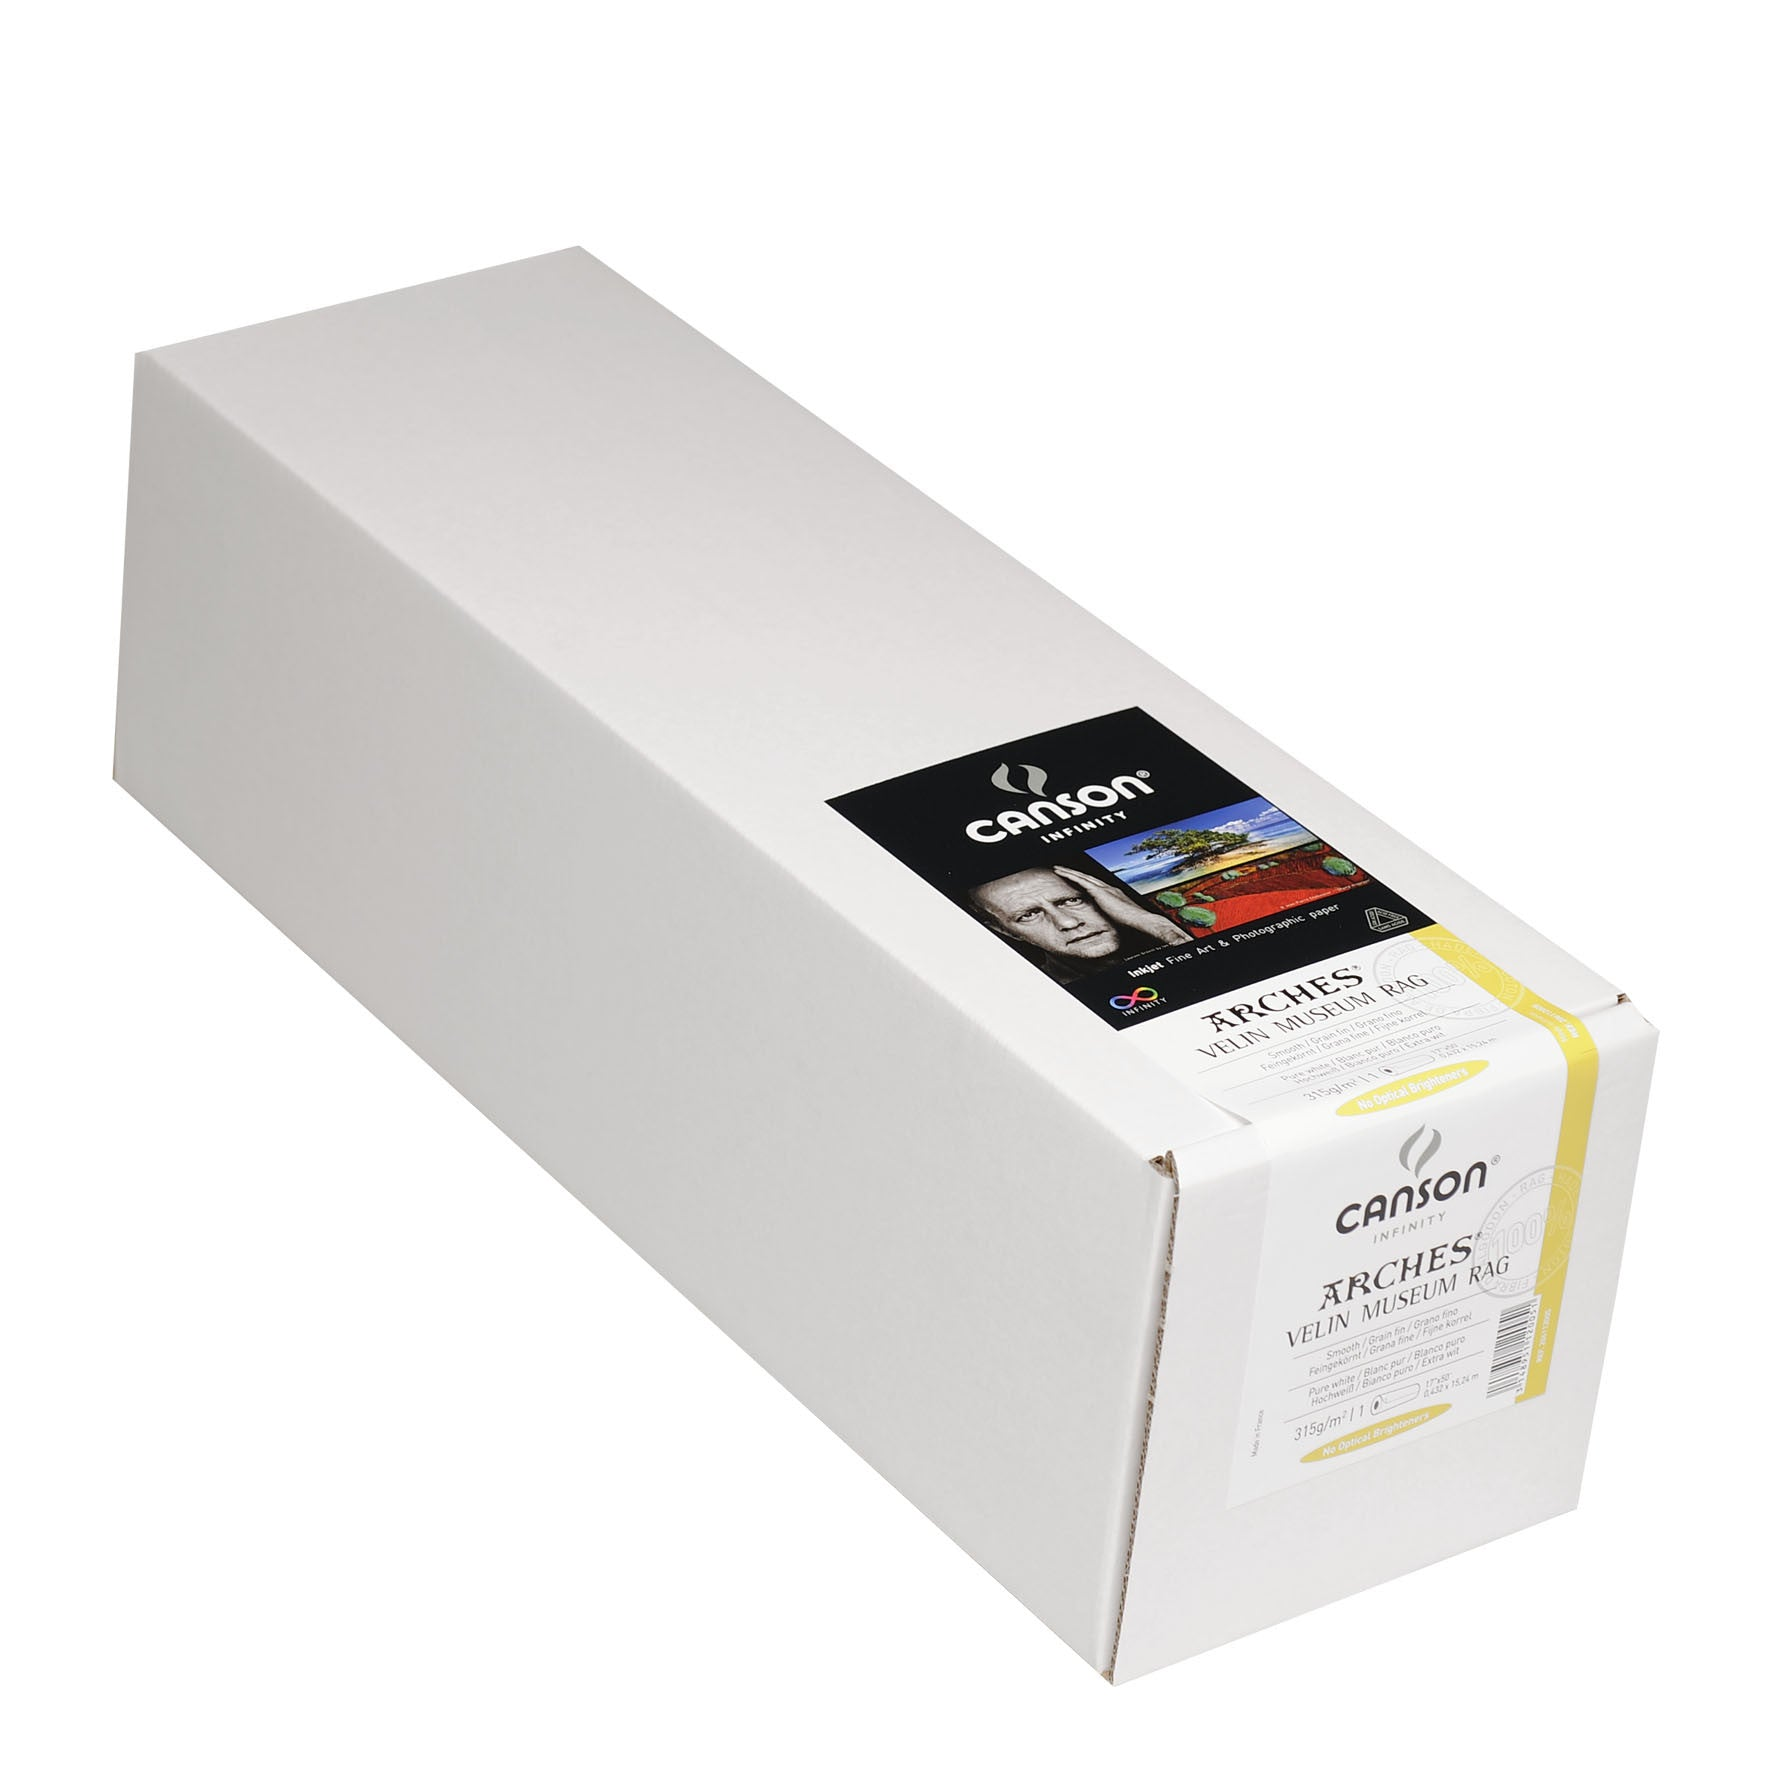 "Canson Infinity Velin Museum Rag - 315gsm - 17""x50' roll - Wall Your Photos"